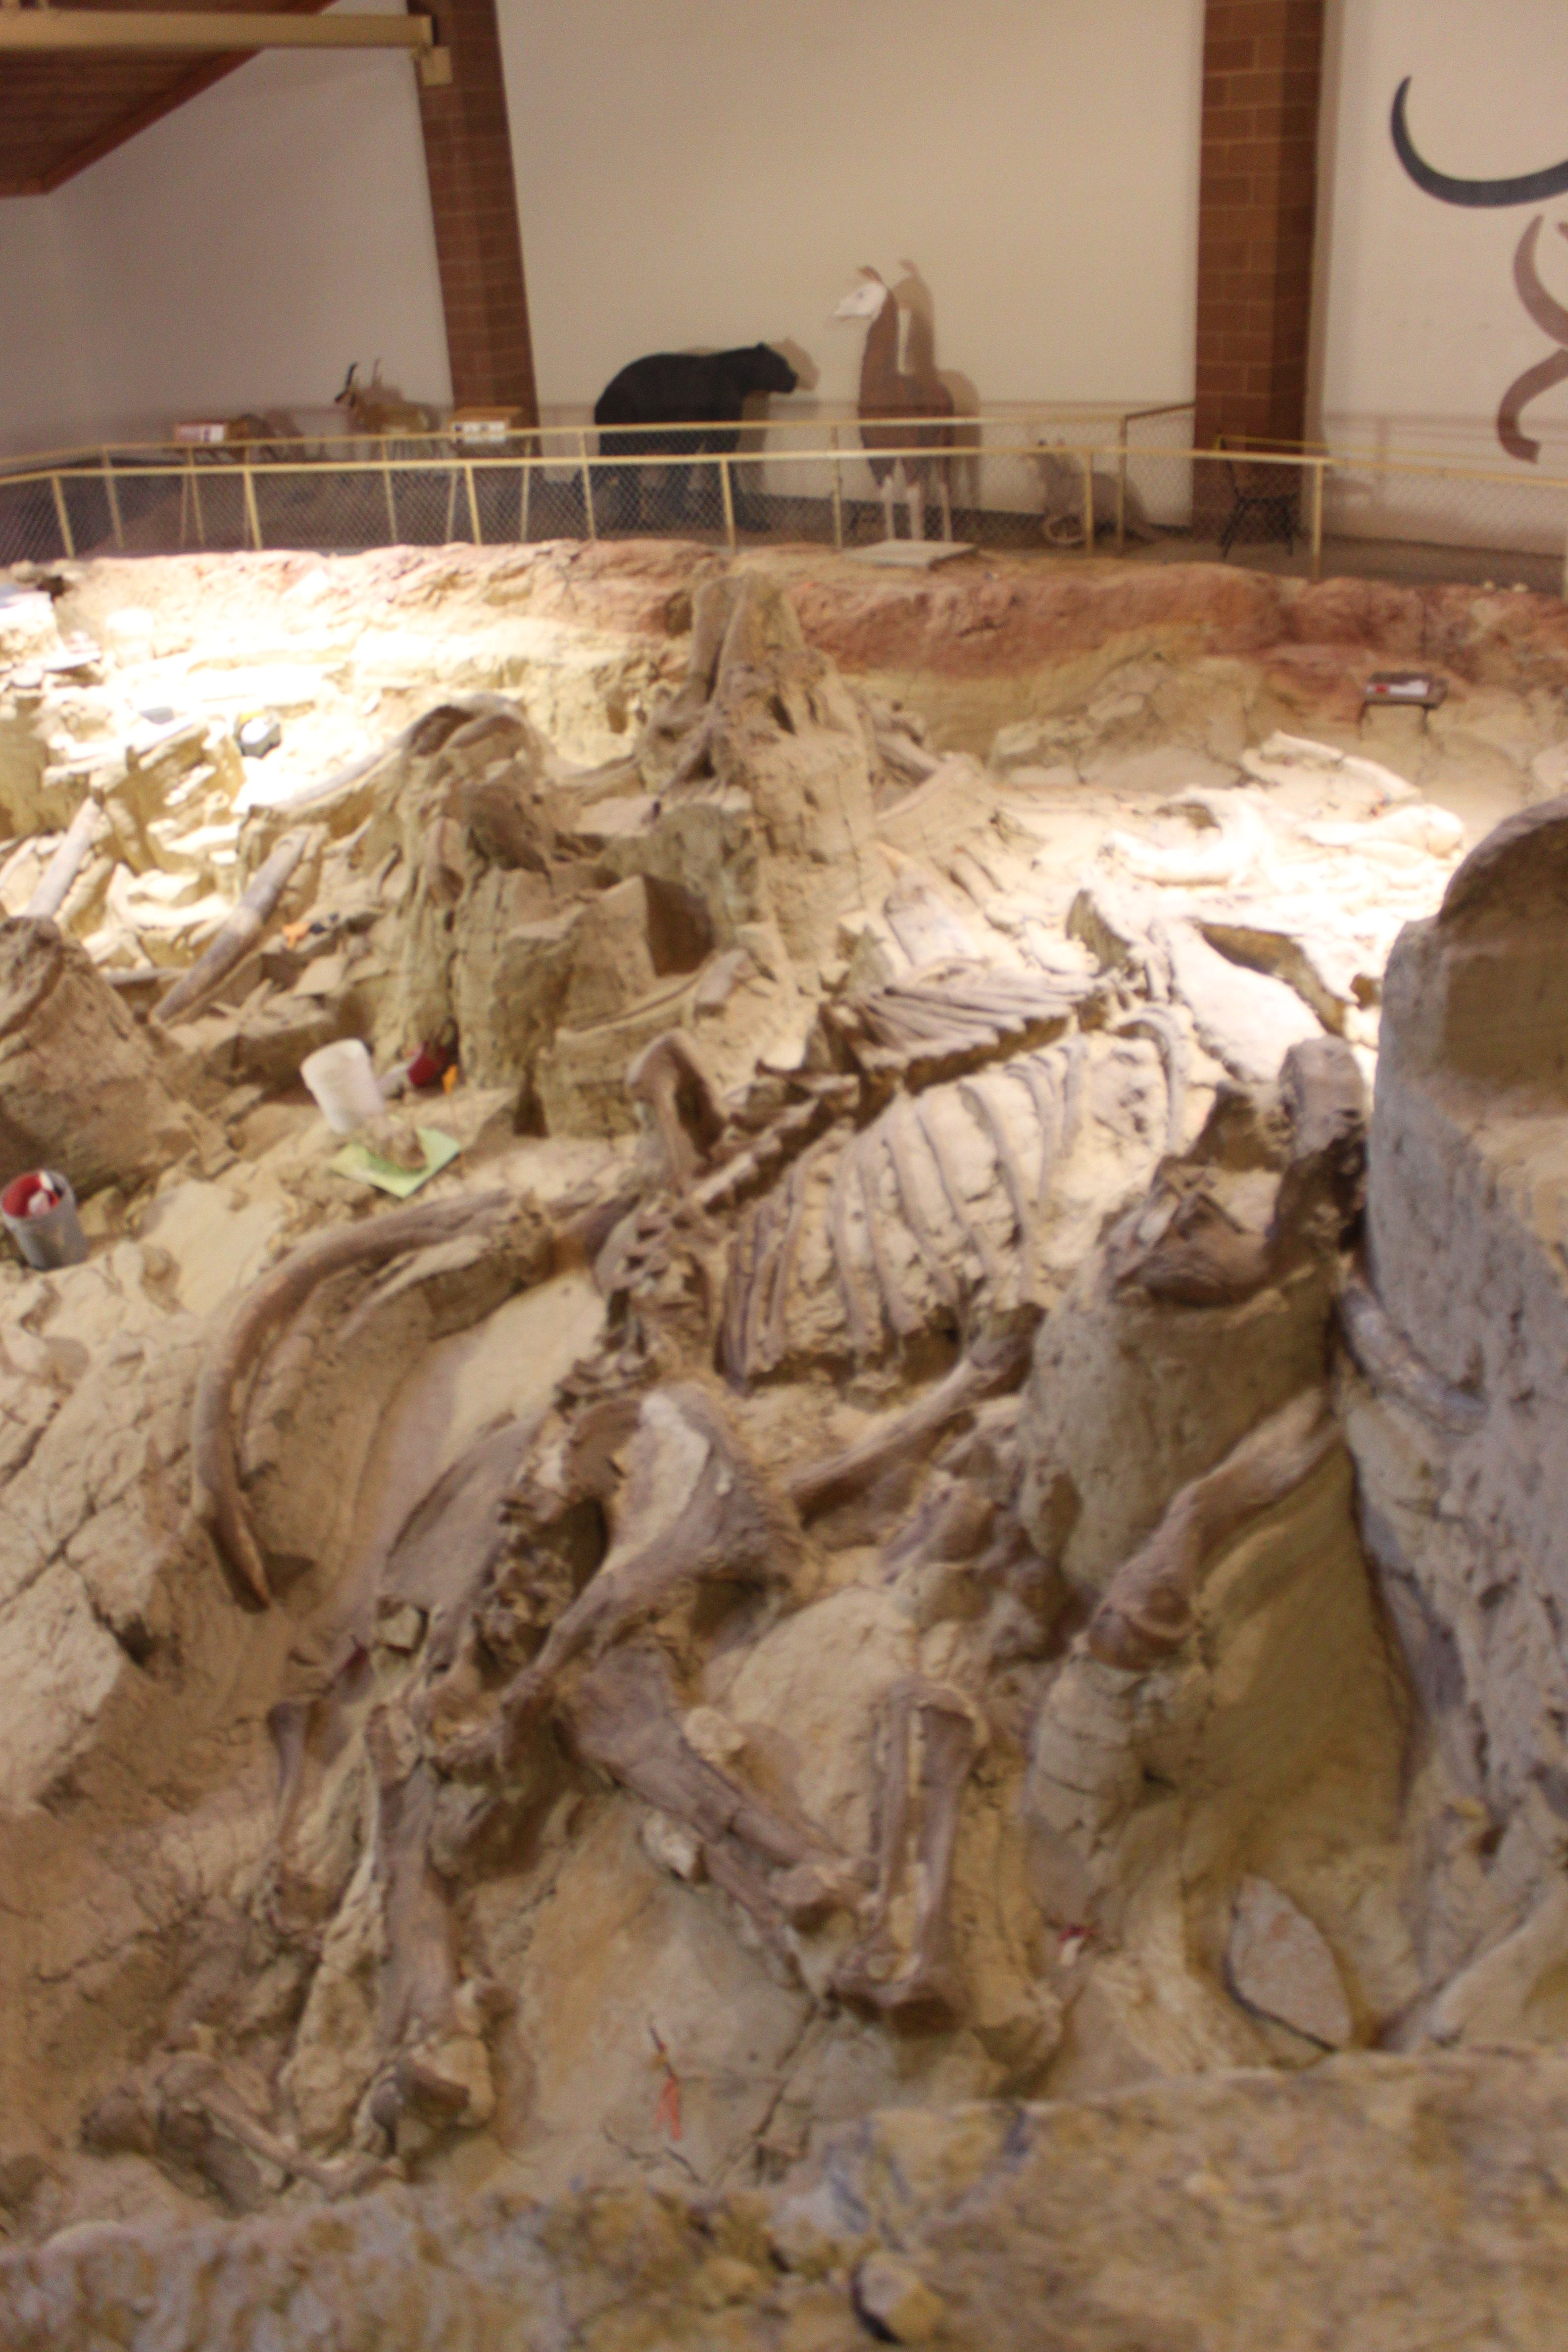 -Picture taken by me-at the Mammoth Site-Hot Springs, South Dakota. Actual mammoth remains in a sinkhole from the Pleistocene Era that a museum was built around when it was found in 1974.